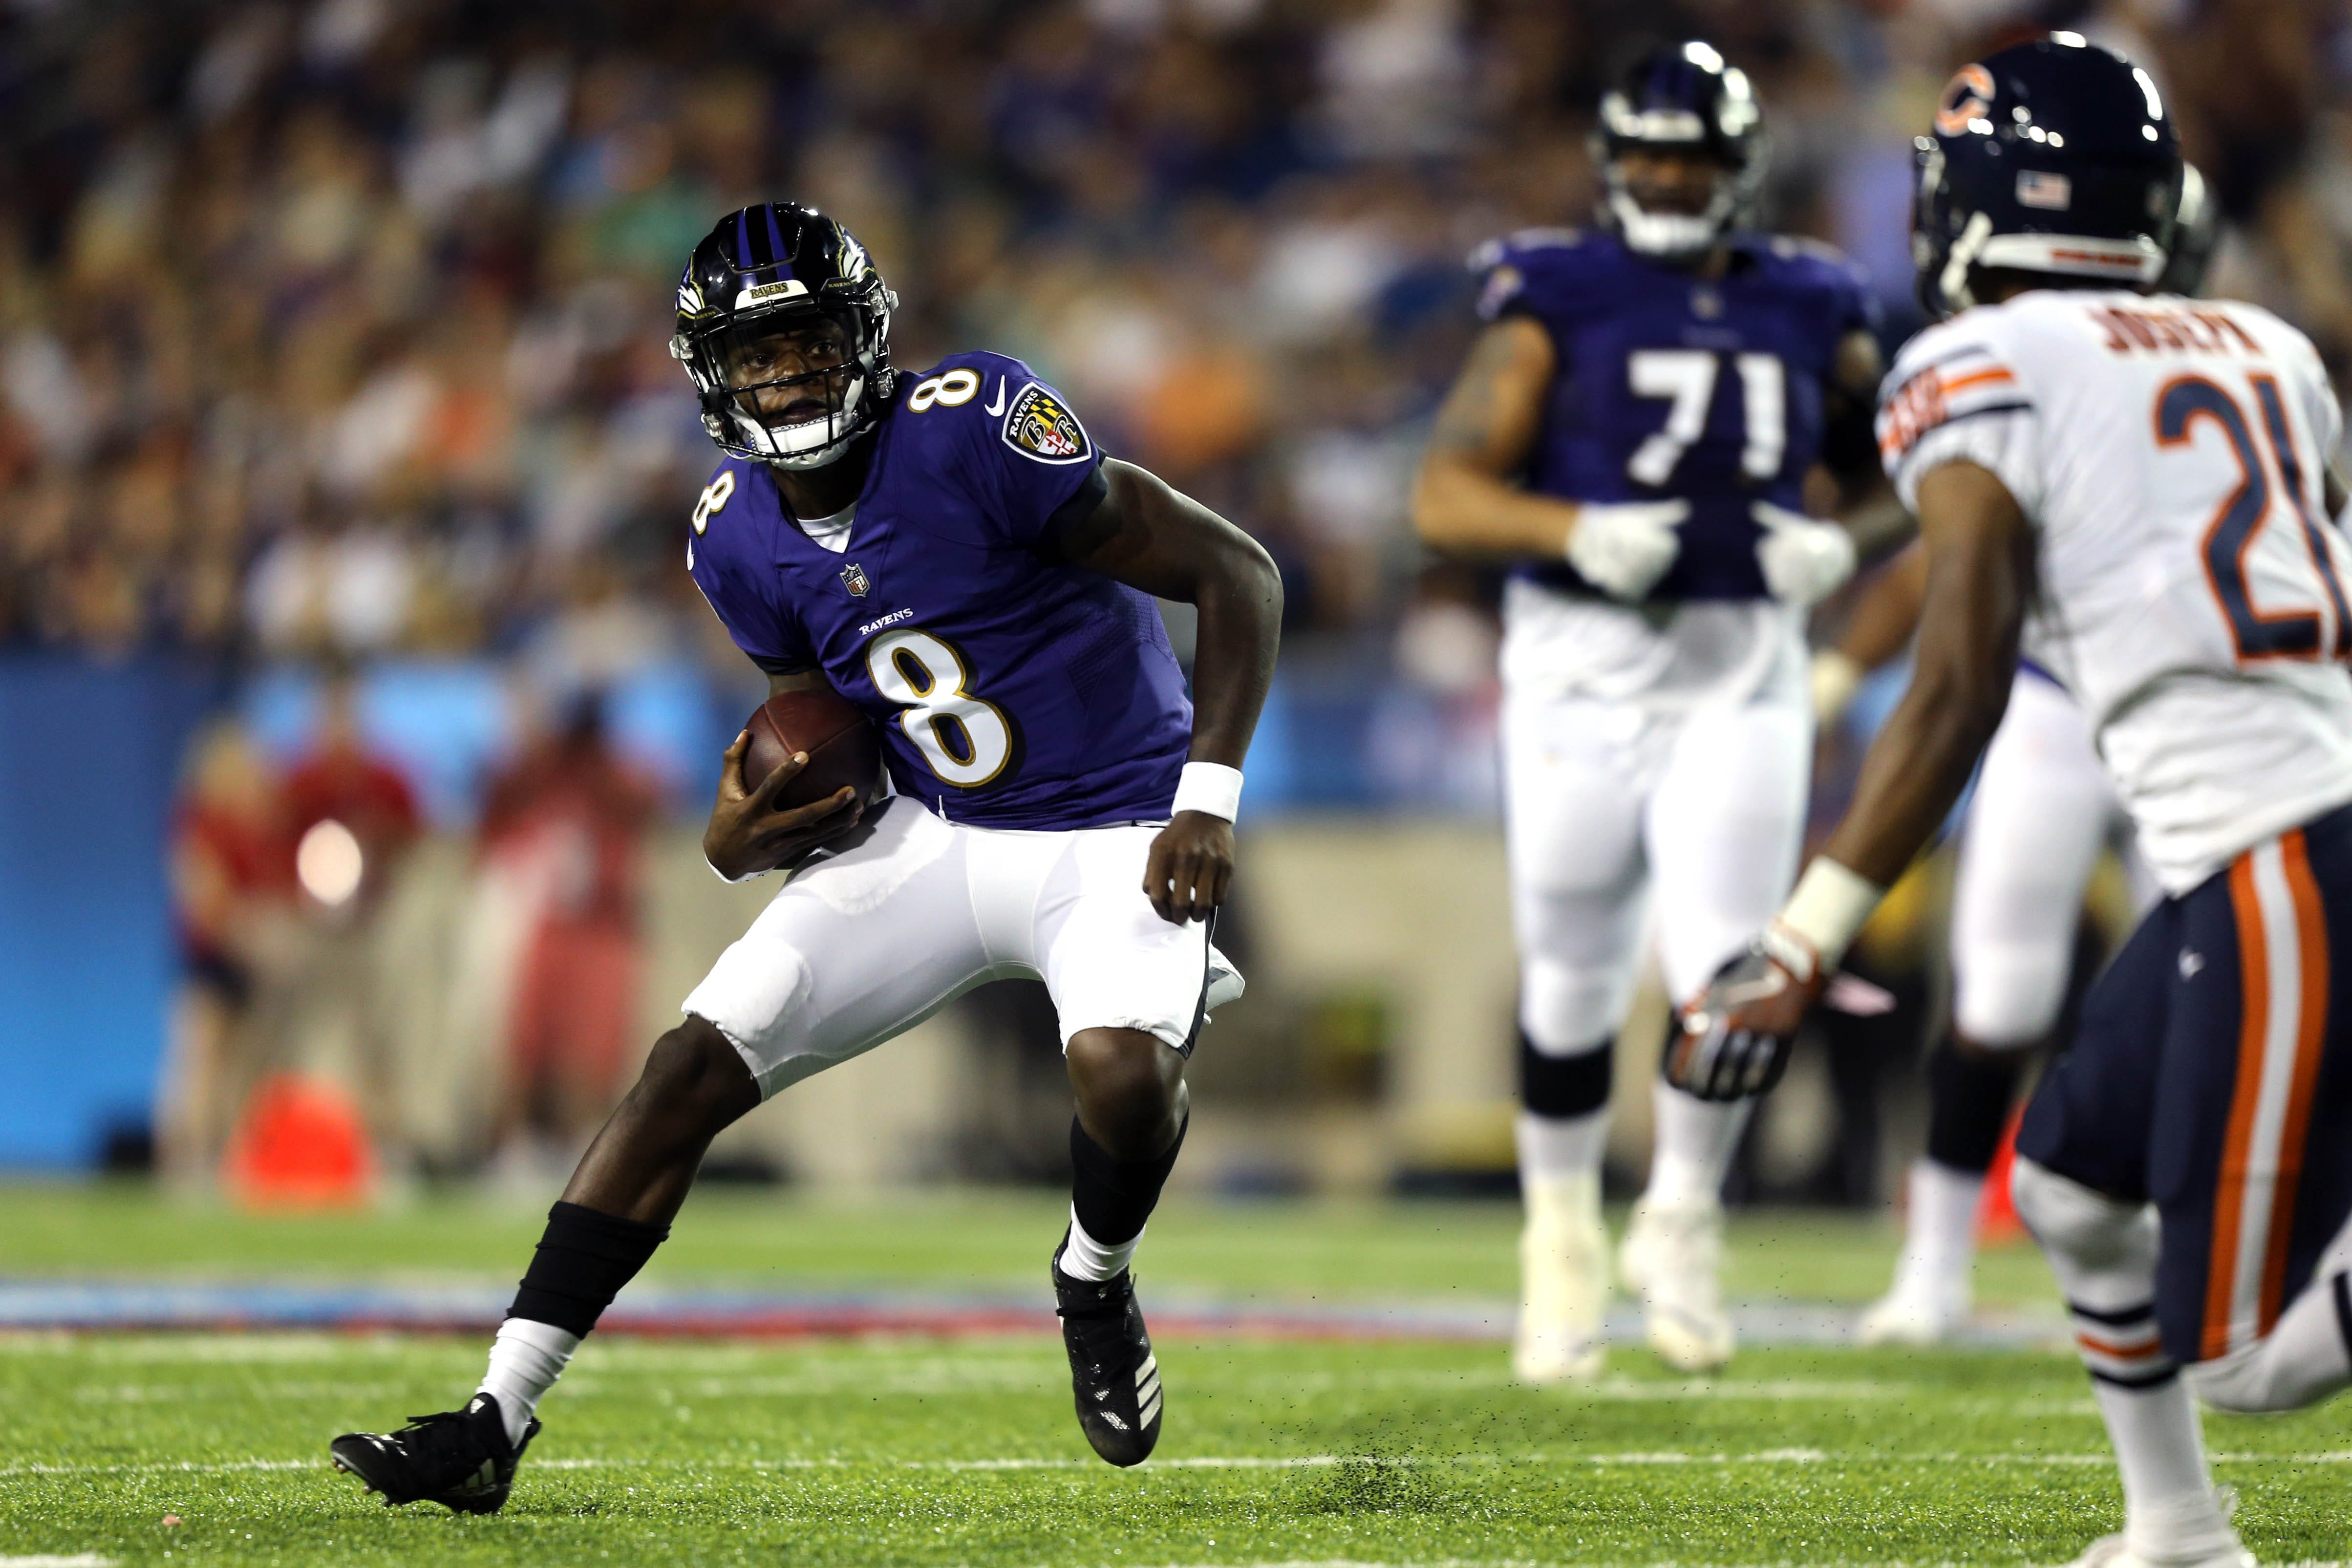 Ravens fans should temper their expectations for Lamar Jackson